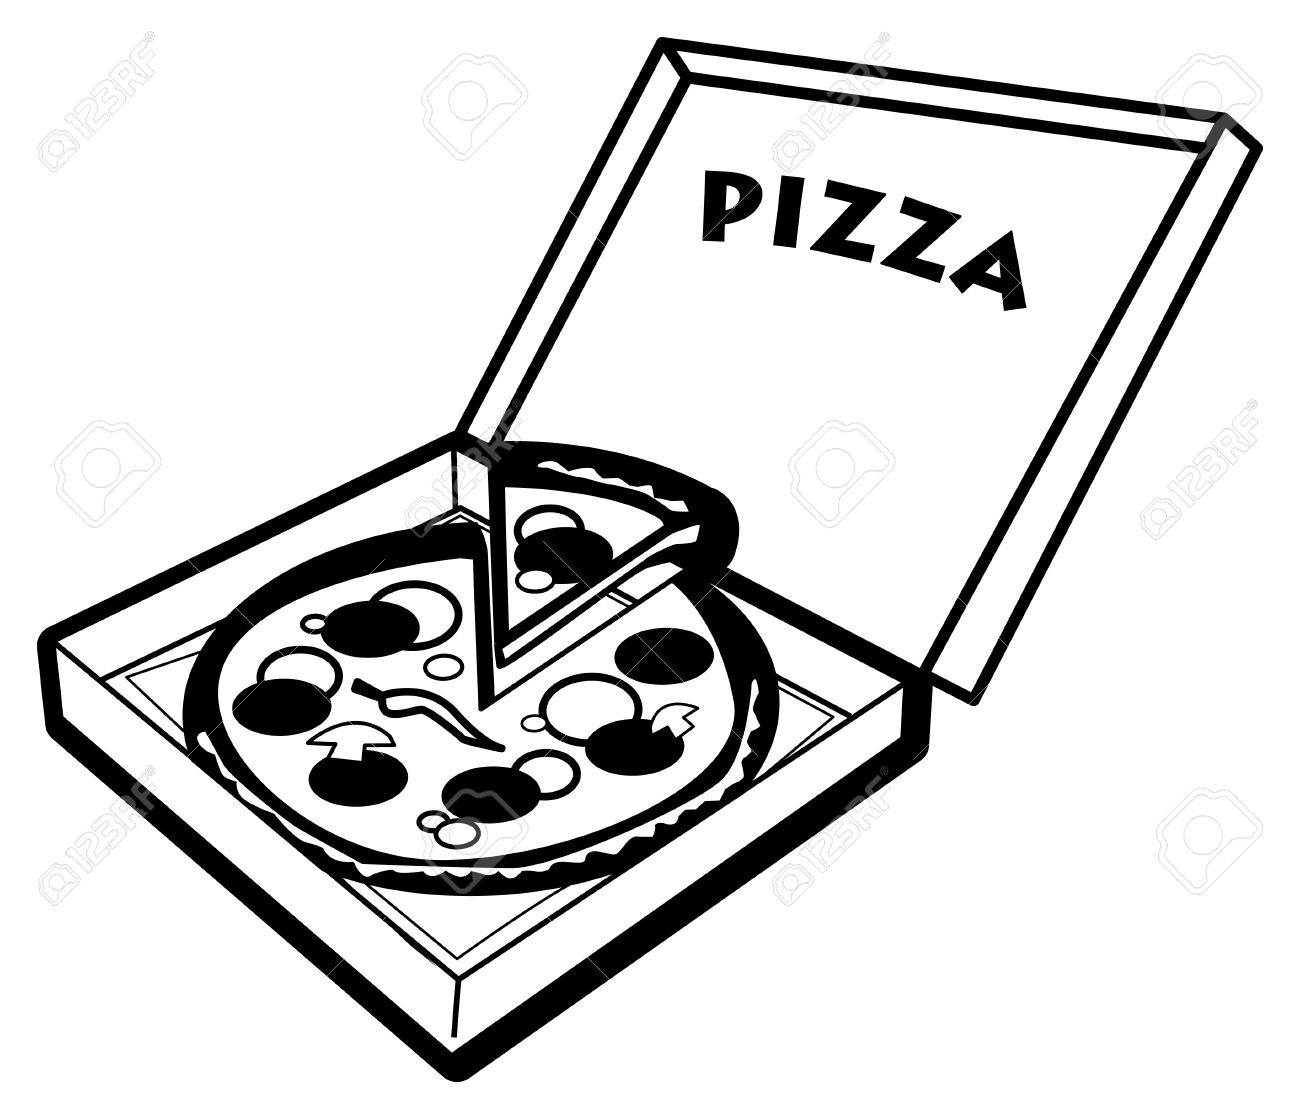 pizza in box royalty free cliparts vectors and stock illustration rh 123rf com empty pizza box clipart empty pizza box clipart